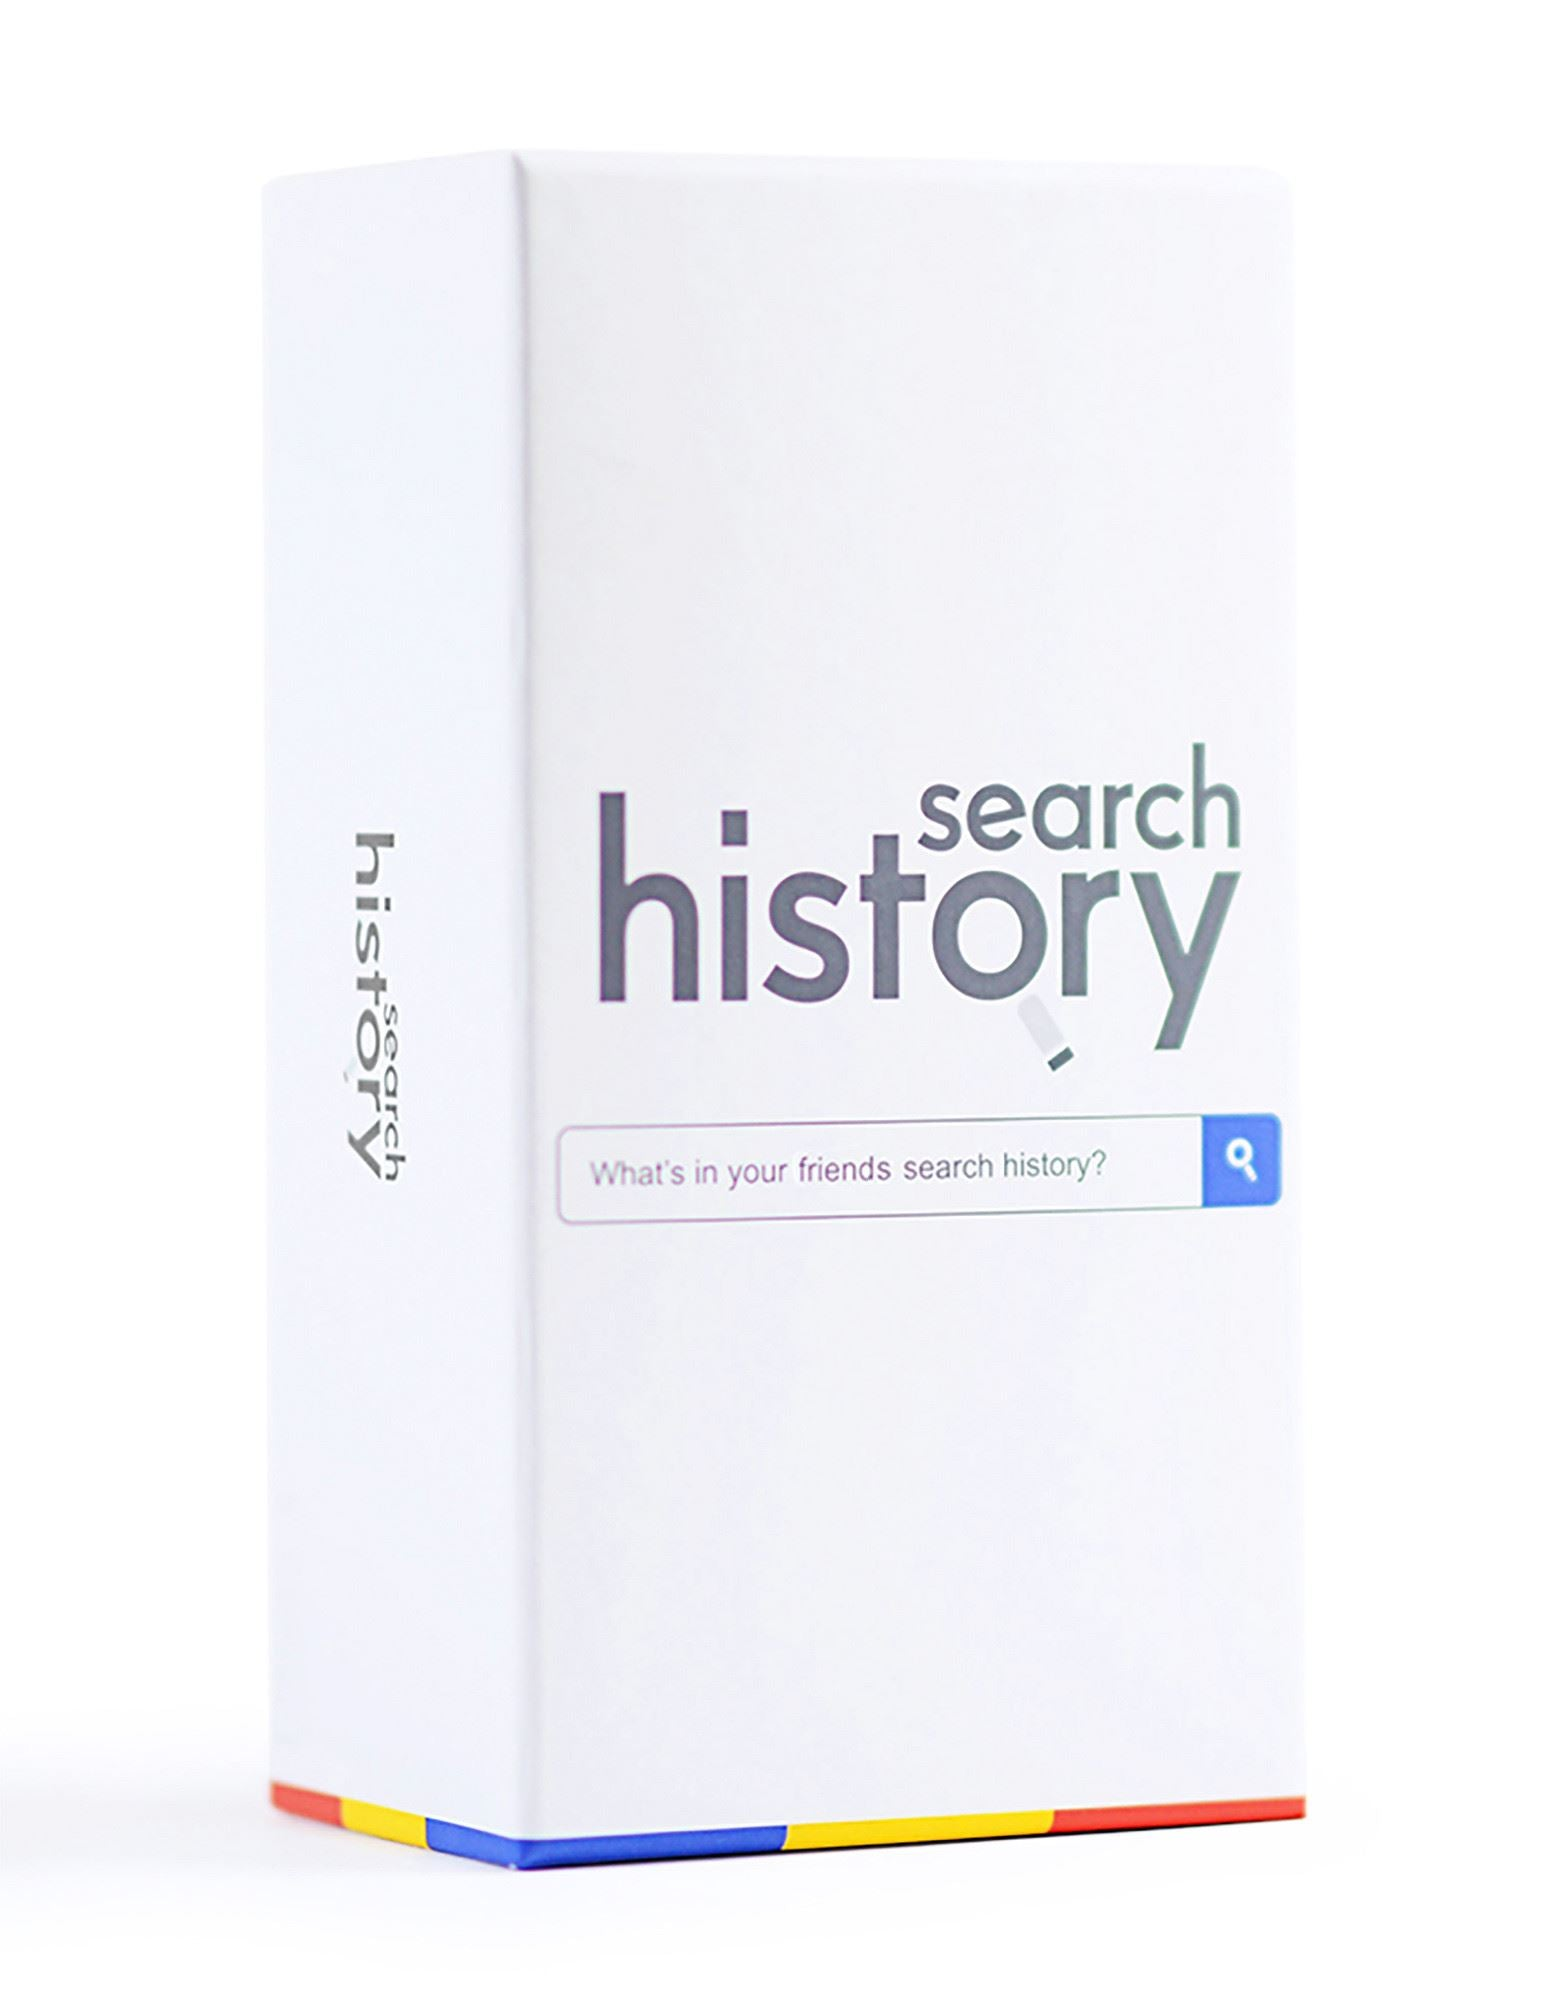 Search History VR Distribution